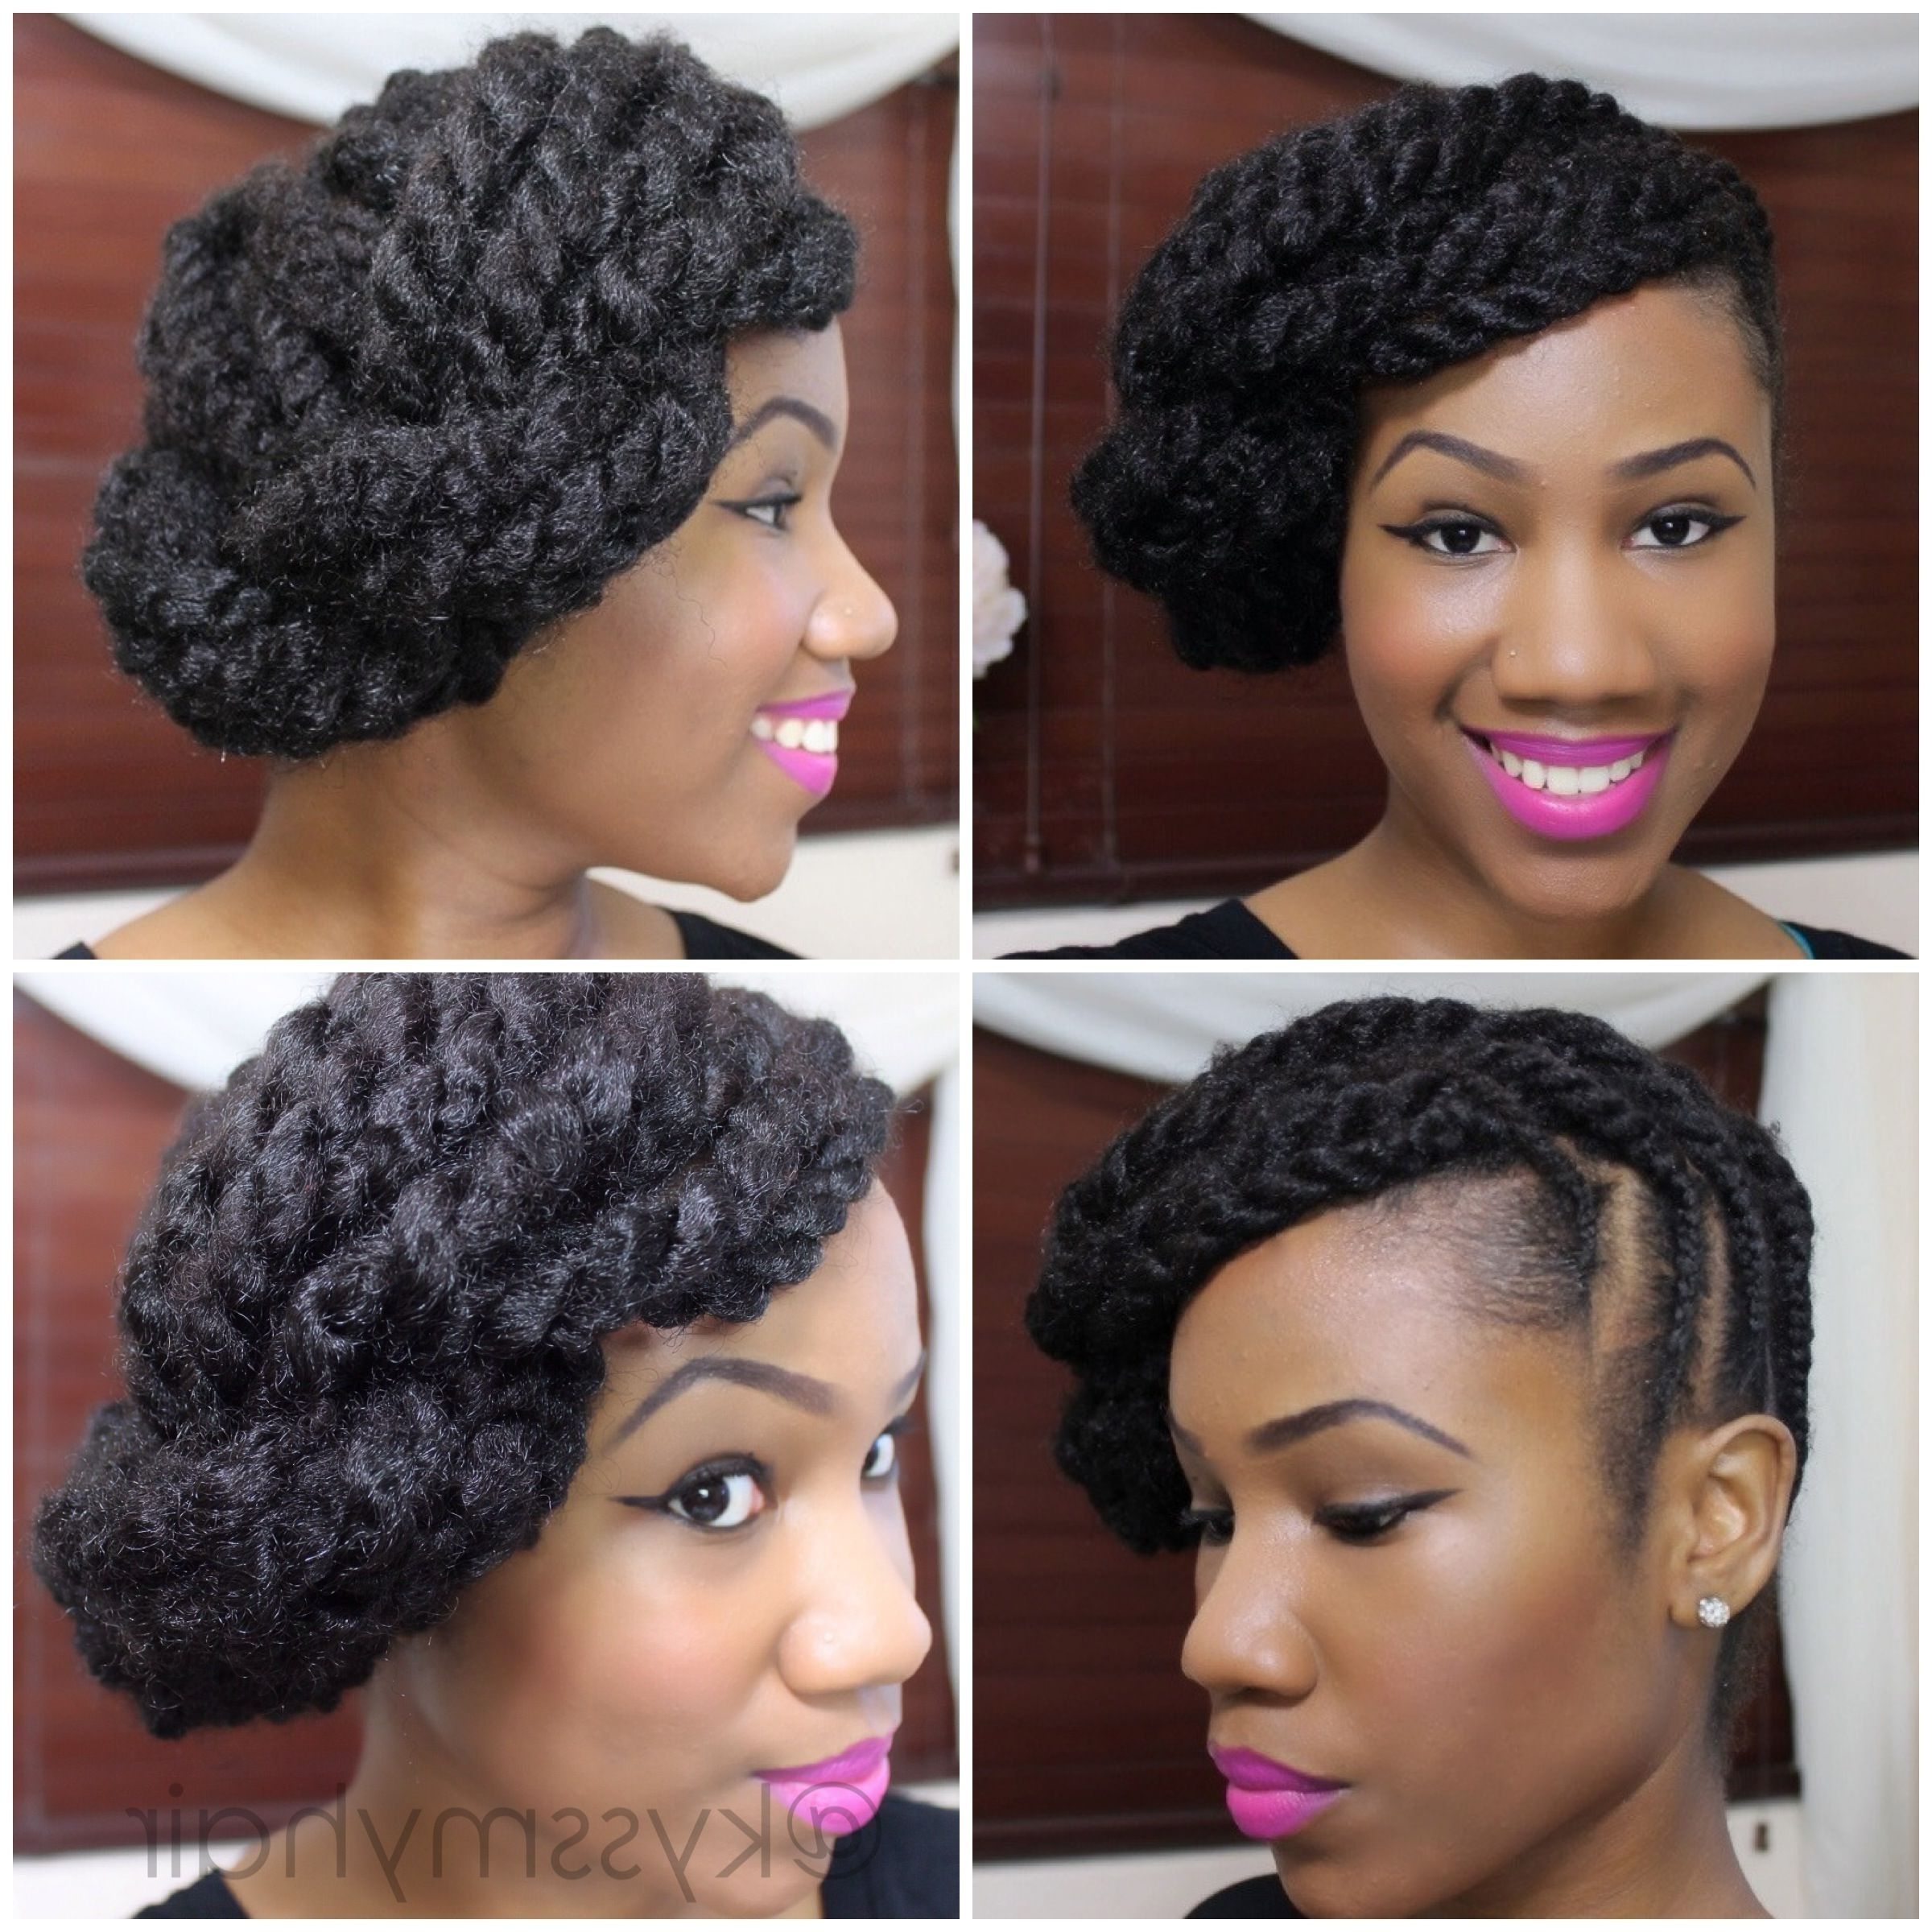 Braided Updo On Natural Hair Using Marley Hair | Kyss My Hair | Kyss Intended For Braided Updo Hairstyles With Extensions (View 6 of 15)